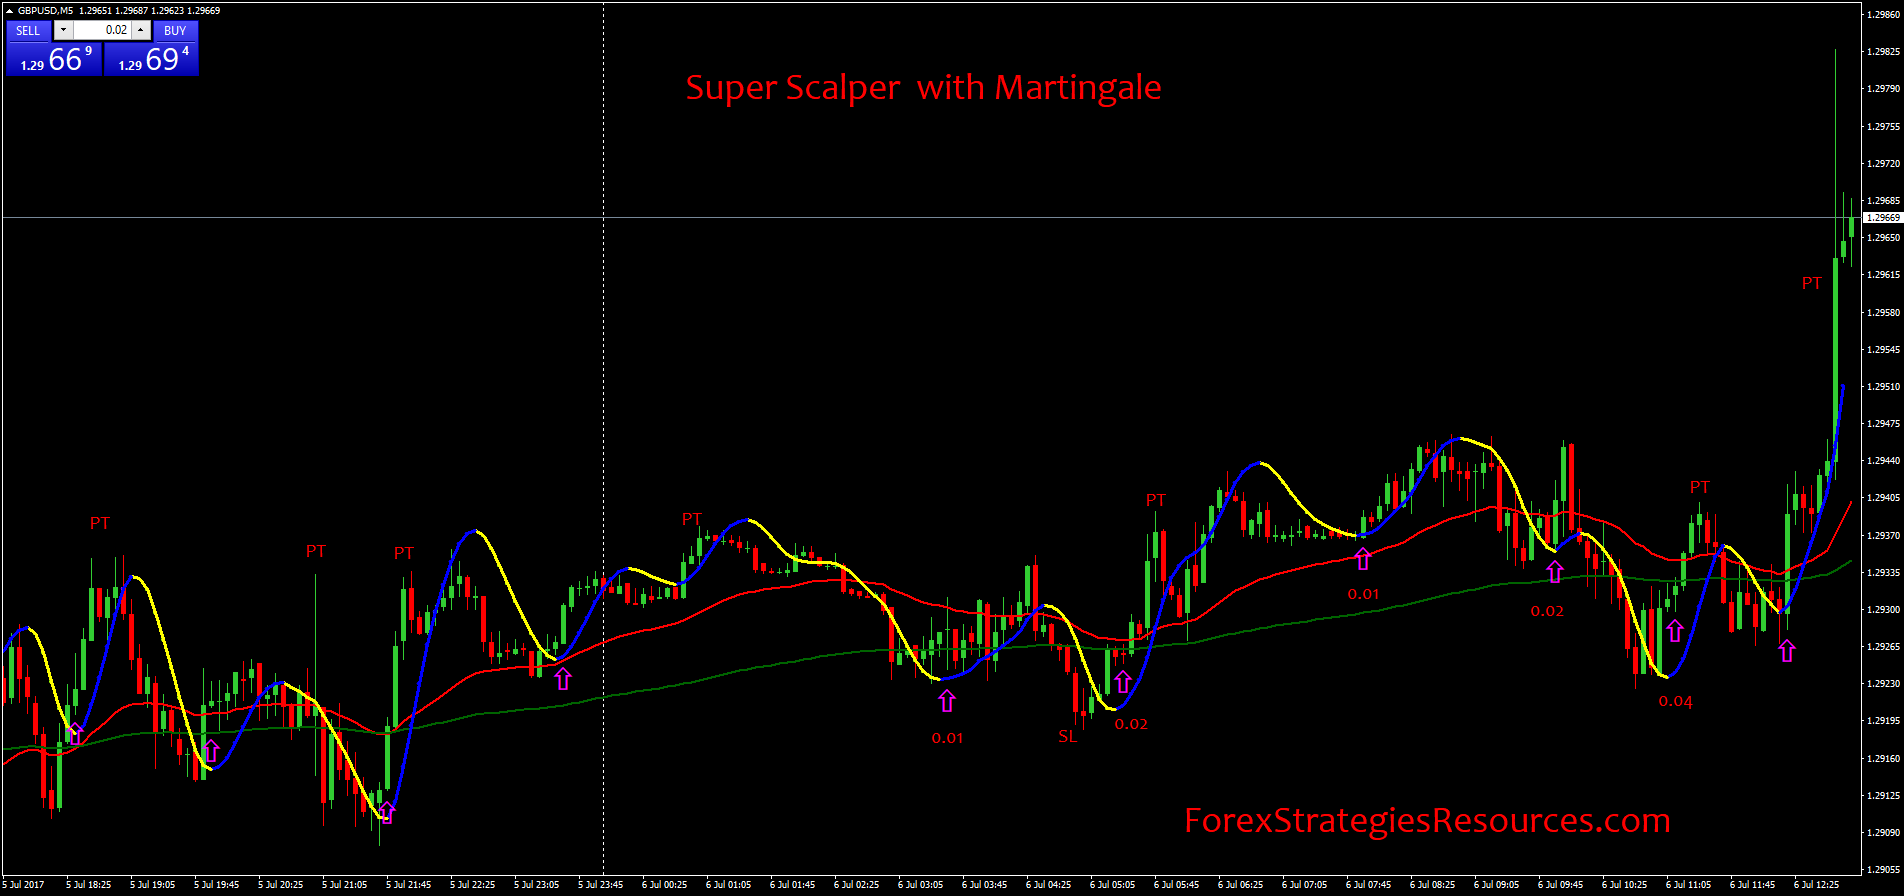 Super Scalper with Martingale - Forex Strategies - Forex